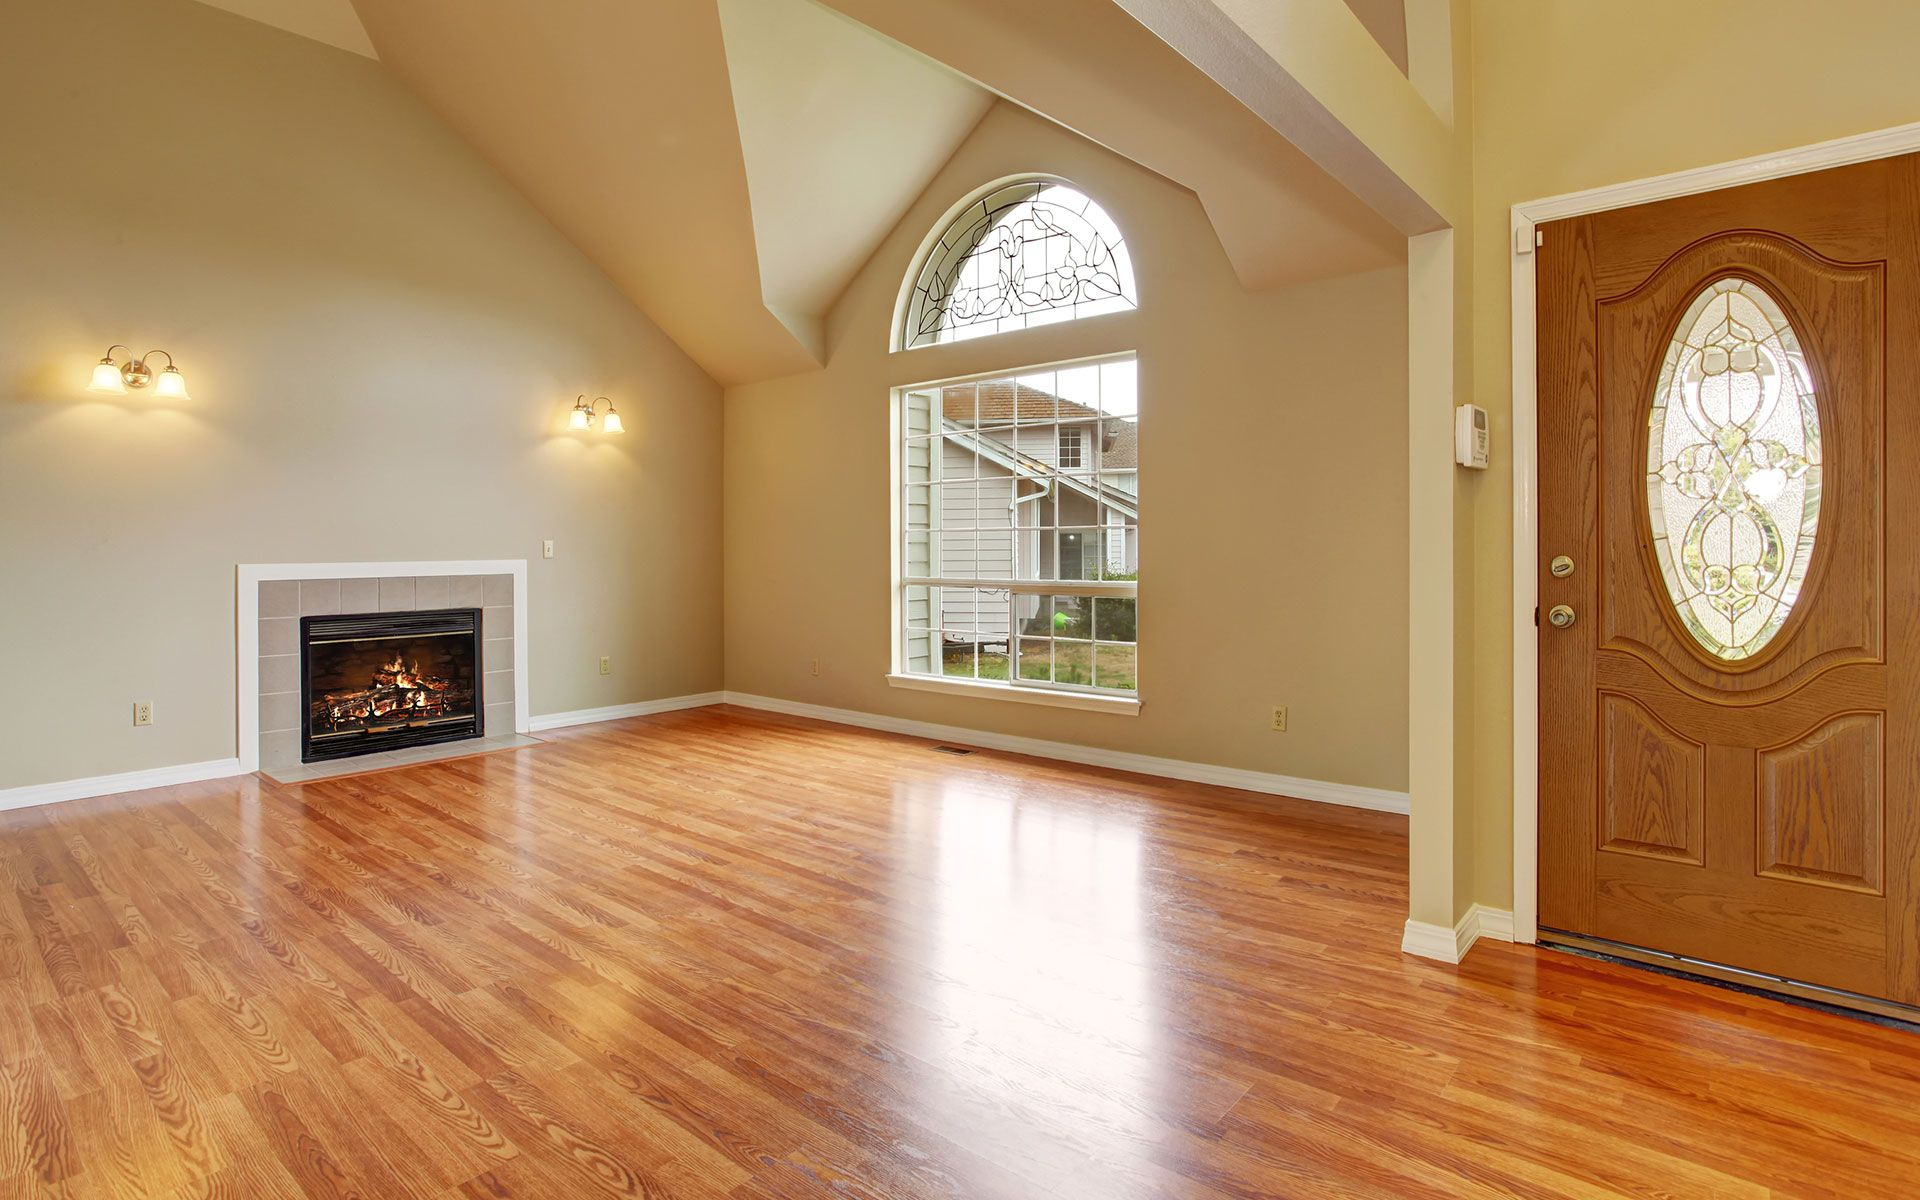 Delightful Boone Flooring Is Hardwood Sanding And Refinishing Specialist. We Event  Sand And Refinish Your Outdoor